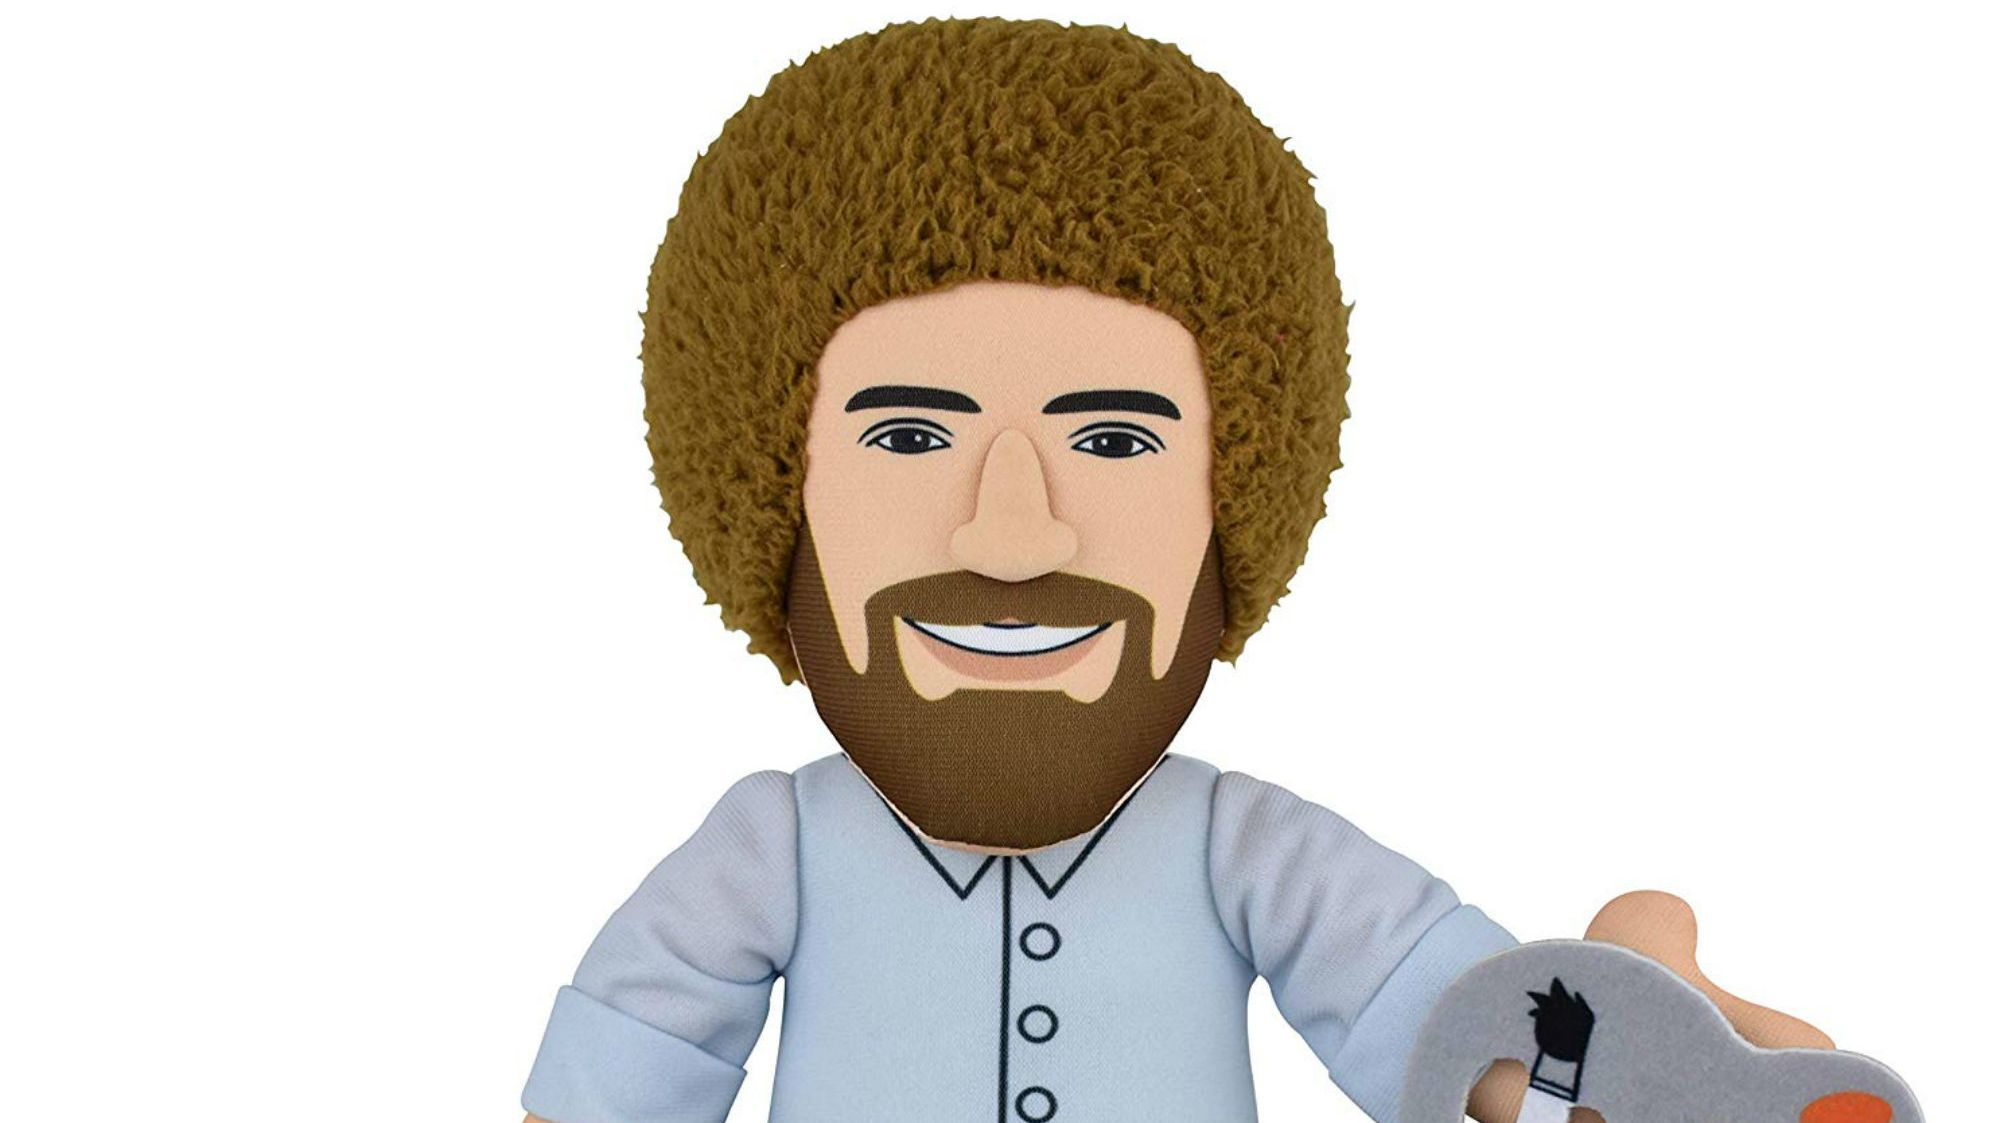 Happy Little Squeeze: Cuddle Up With This Bob Ross Plush